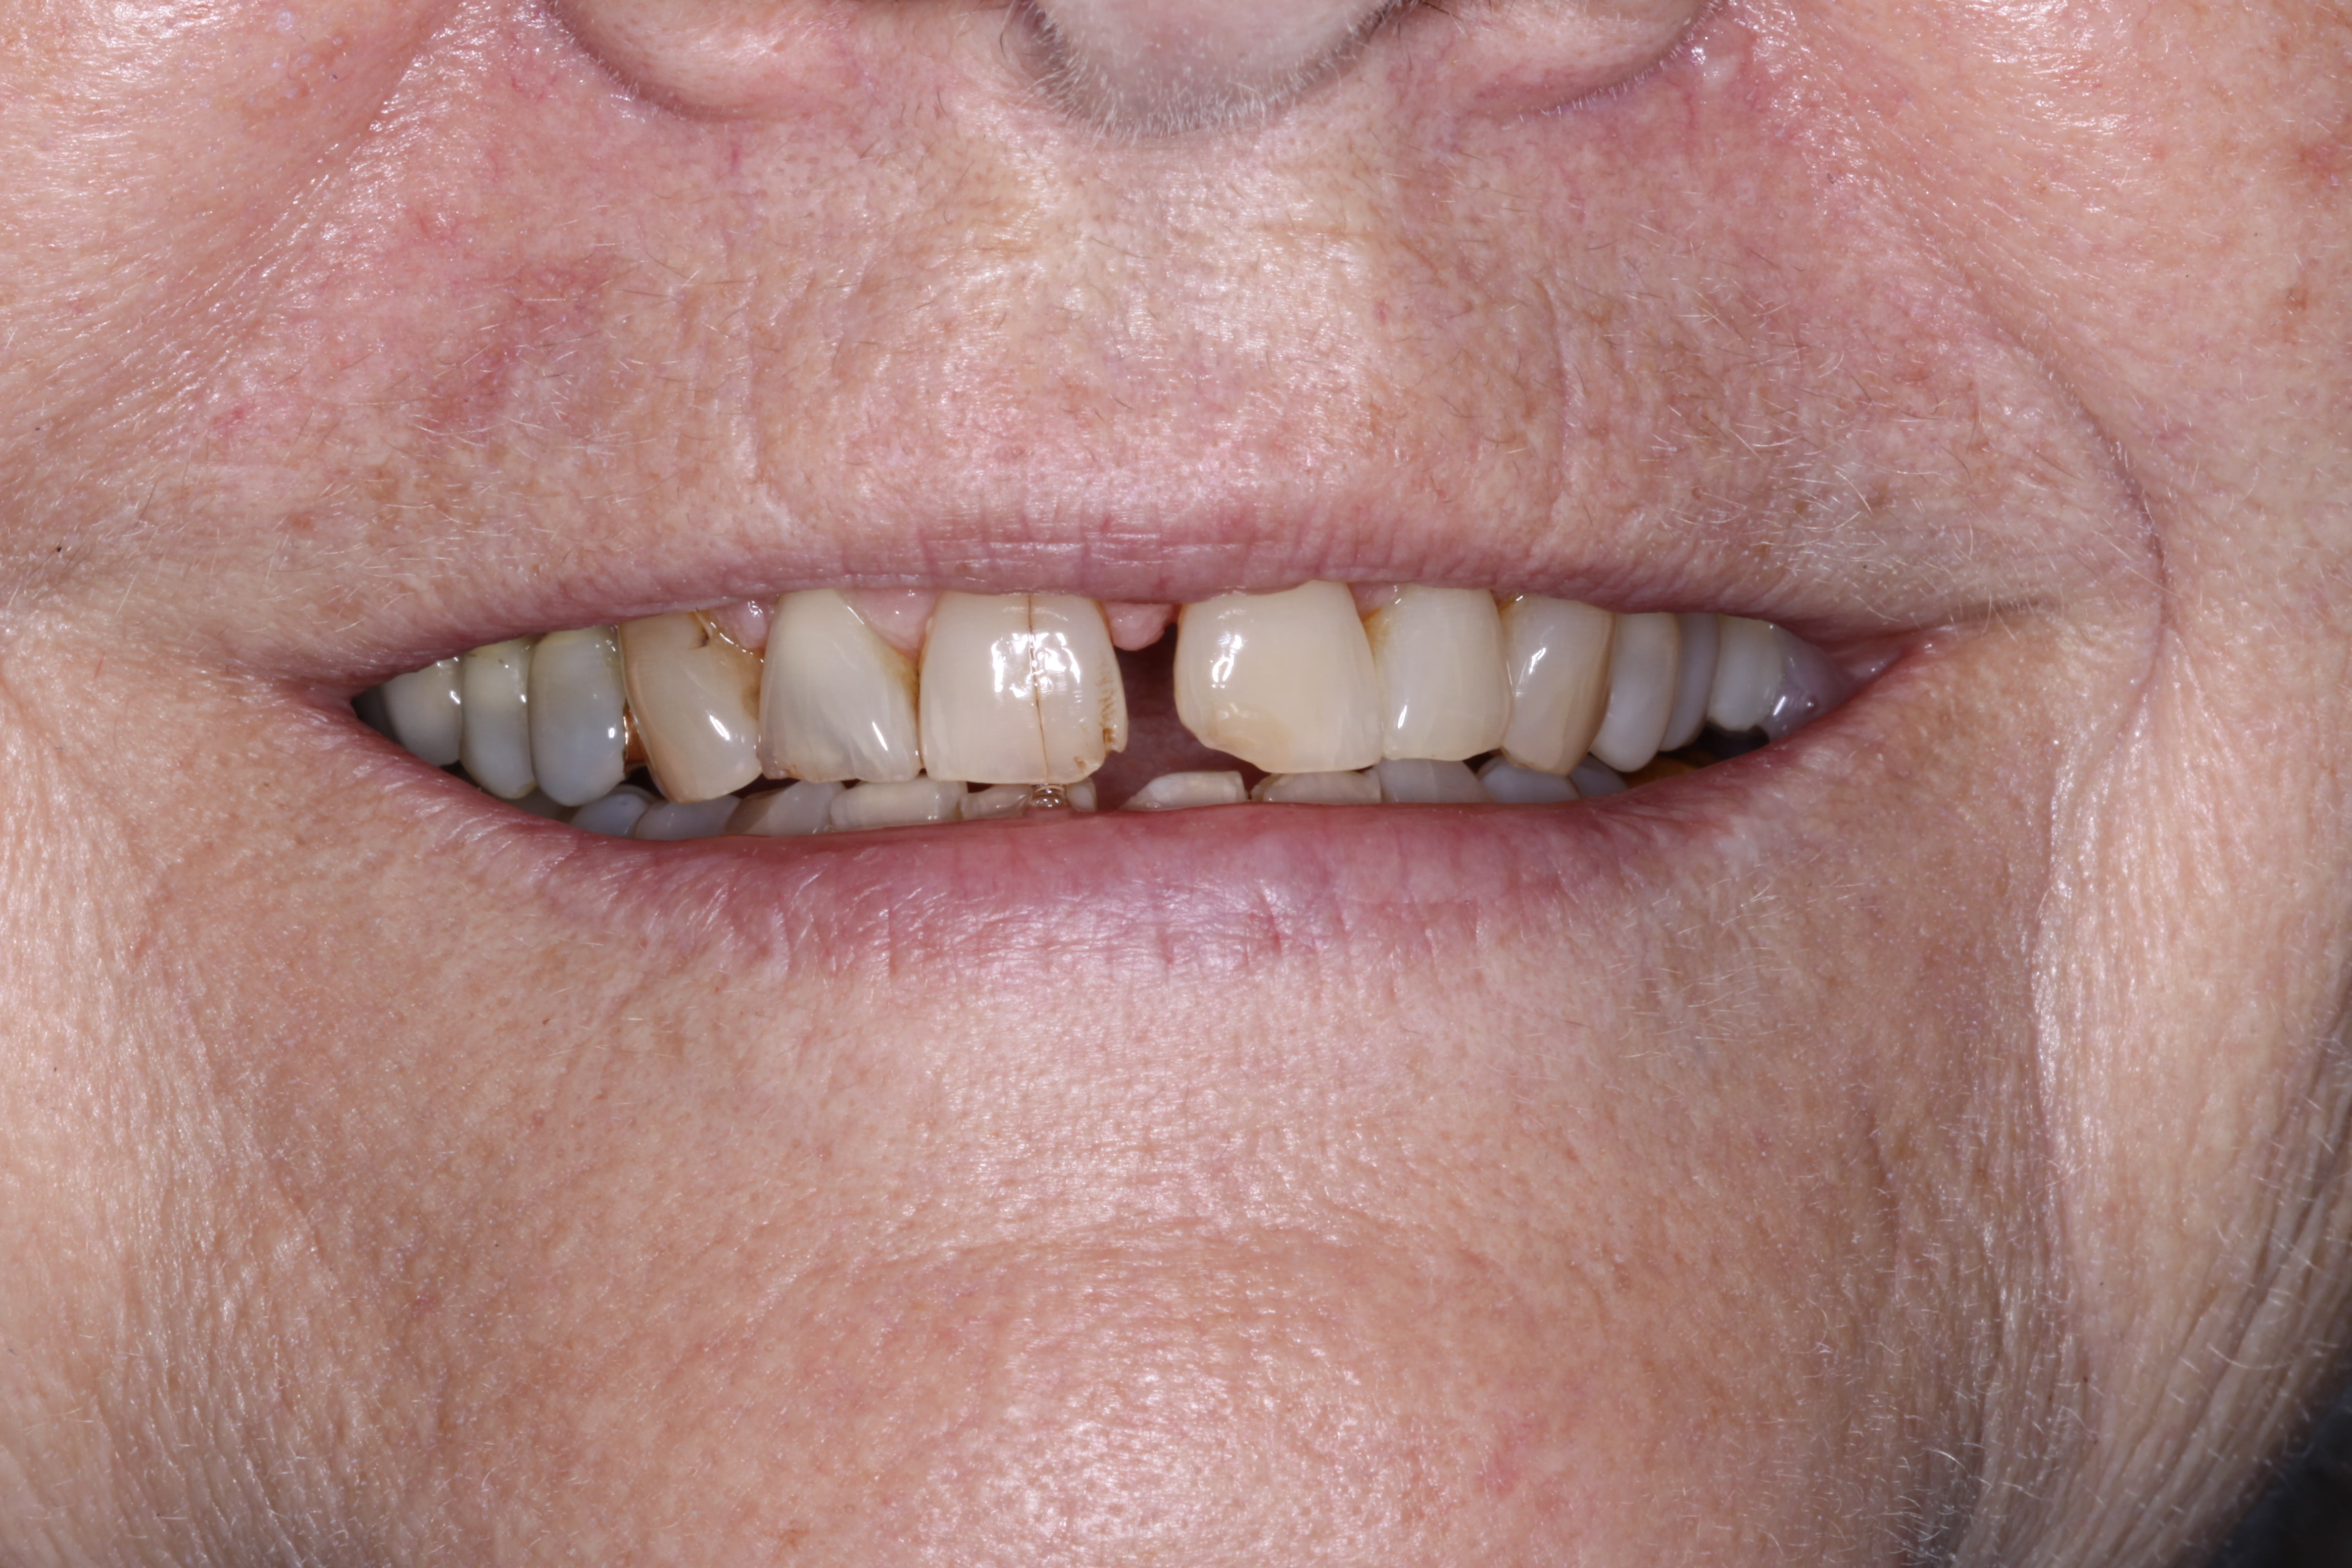 before photo of upper front teeth showing large gaps and stains